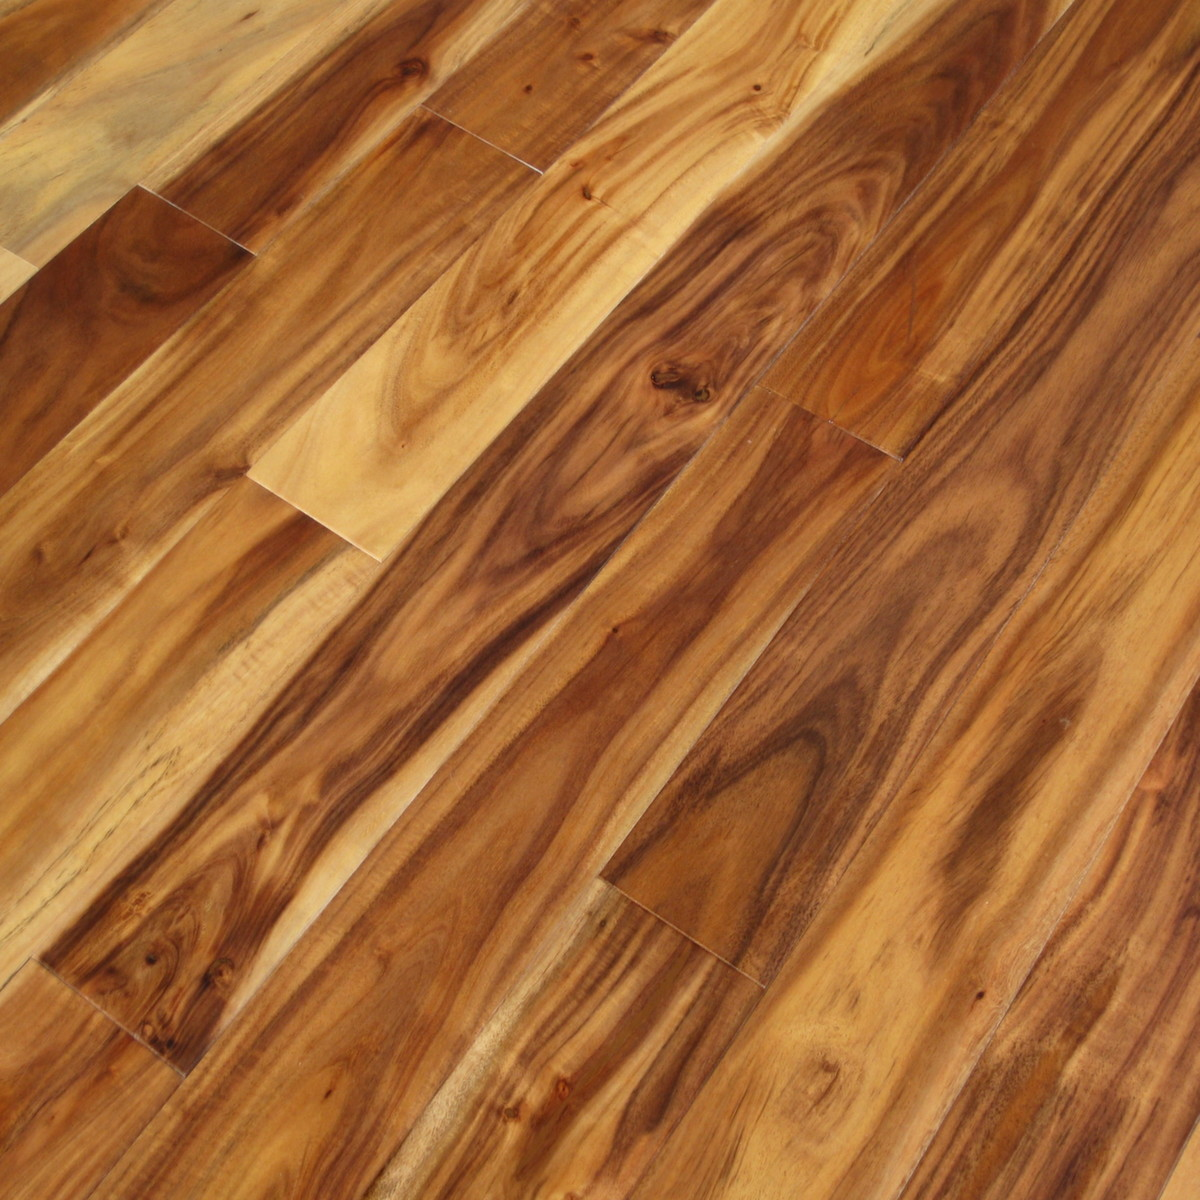 acacia natural plank hardwood flooring acacia confusa On acacia hardwood flooring